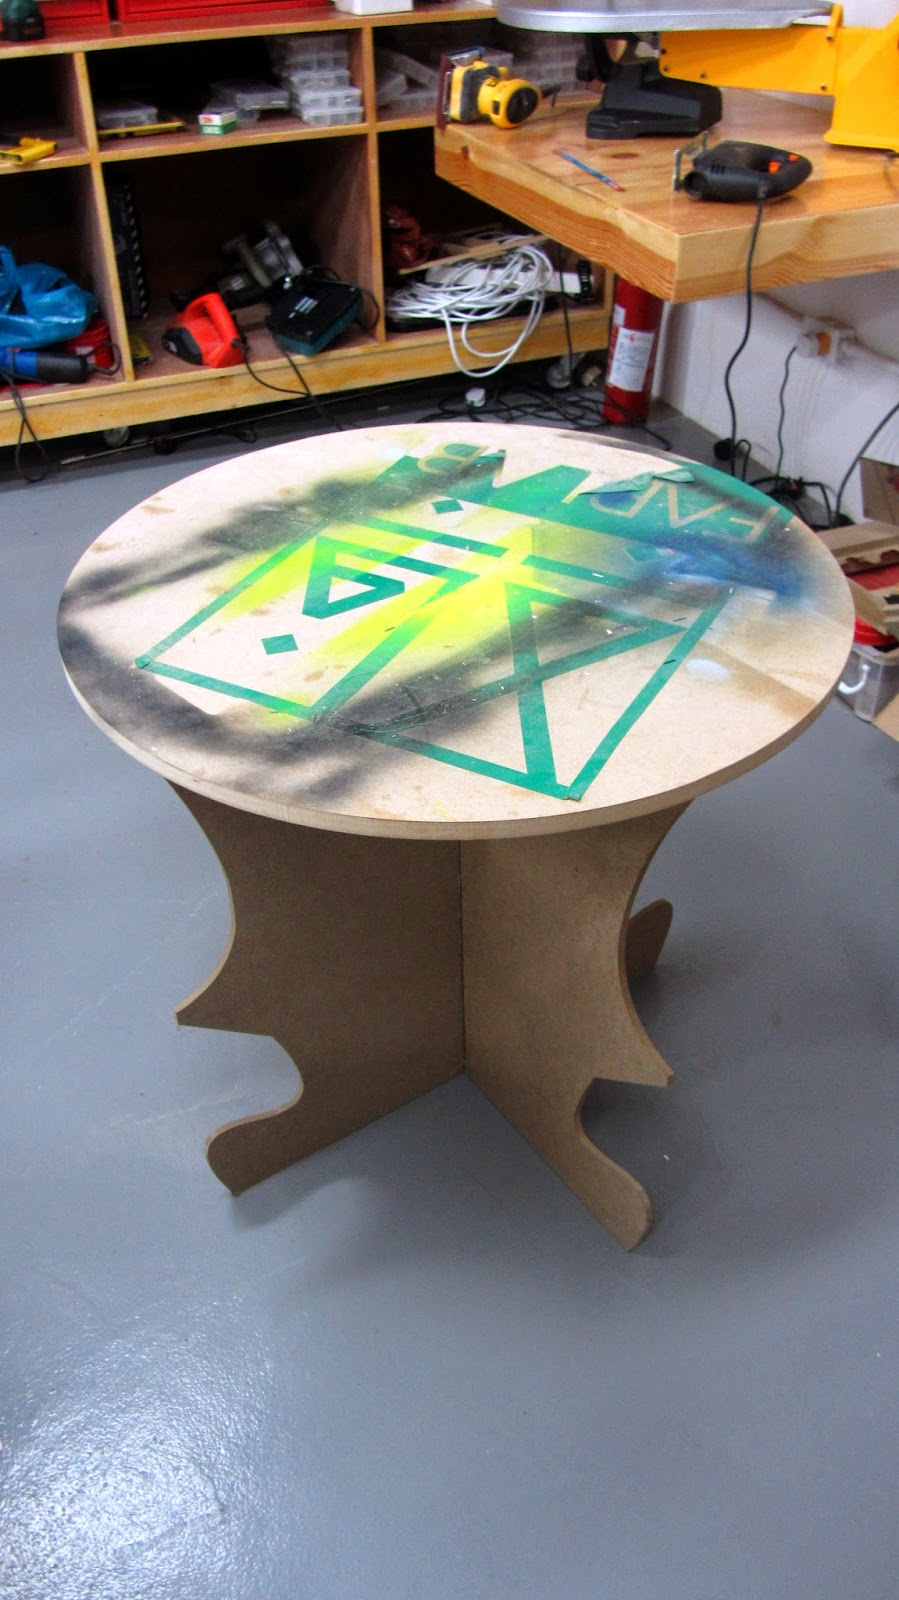 Digitally fabricated table FABLAB KFUPM Dhahran Saudi blogging